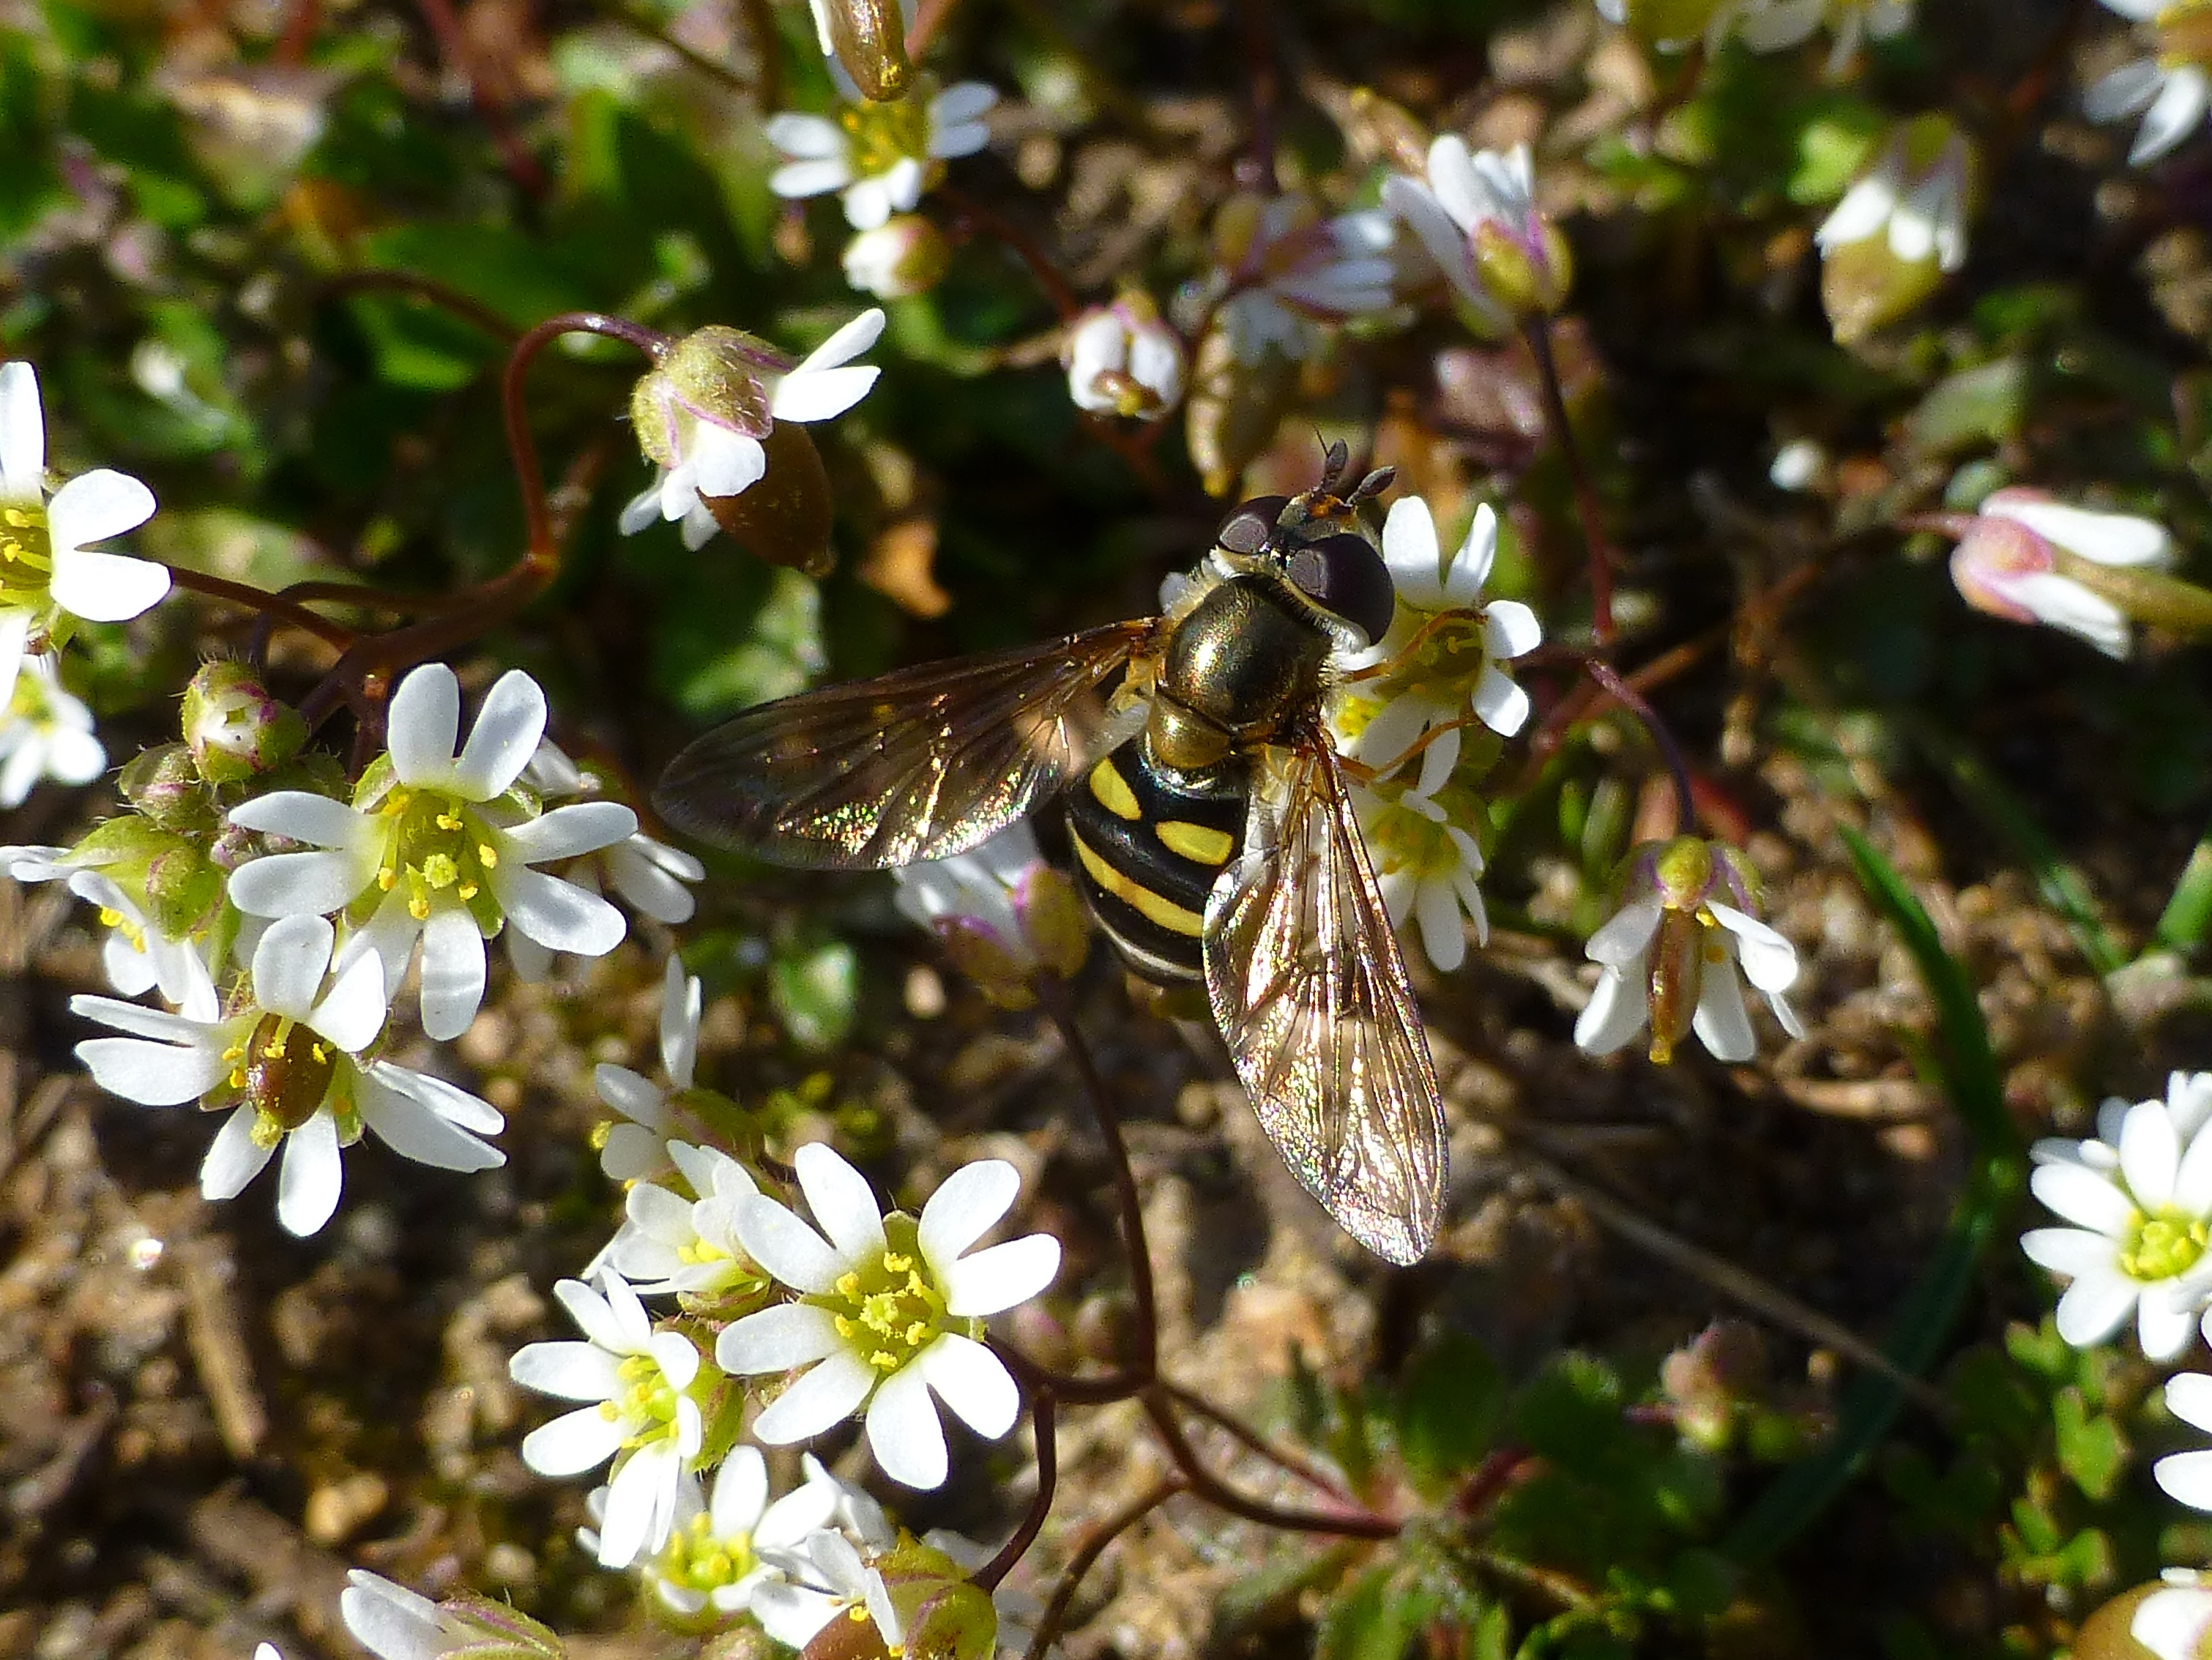 whitlow-grass-and-syrphid-fly